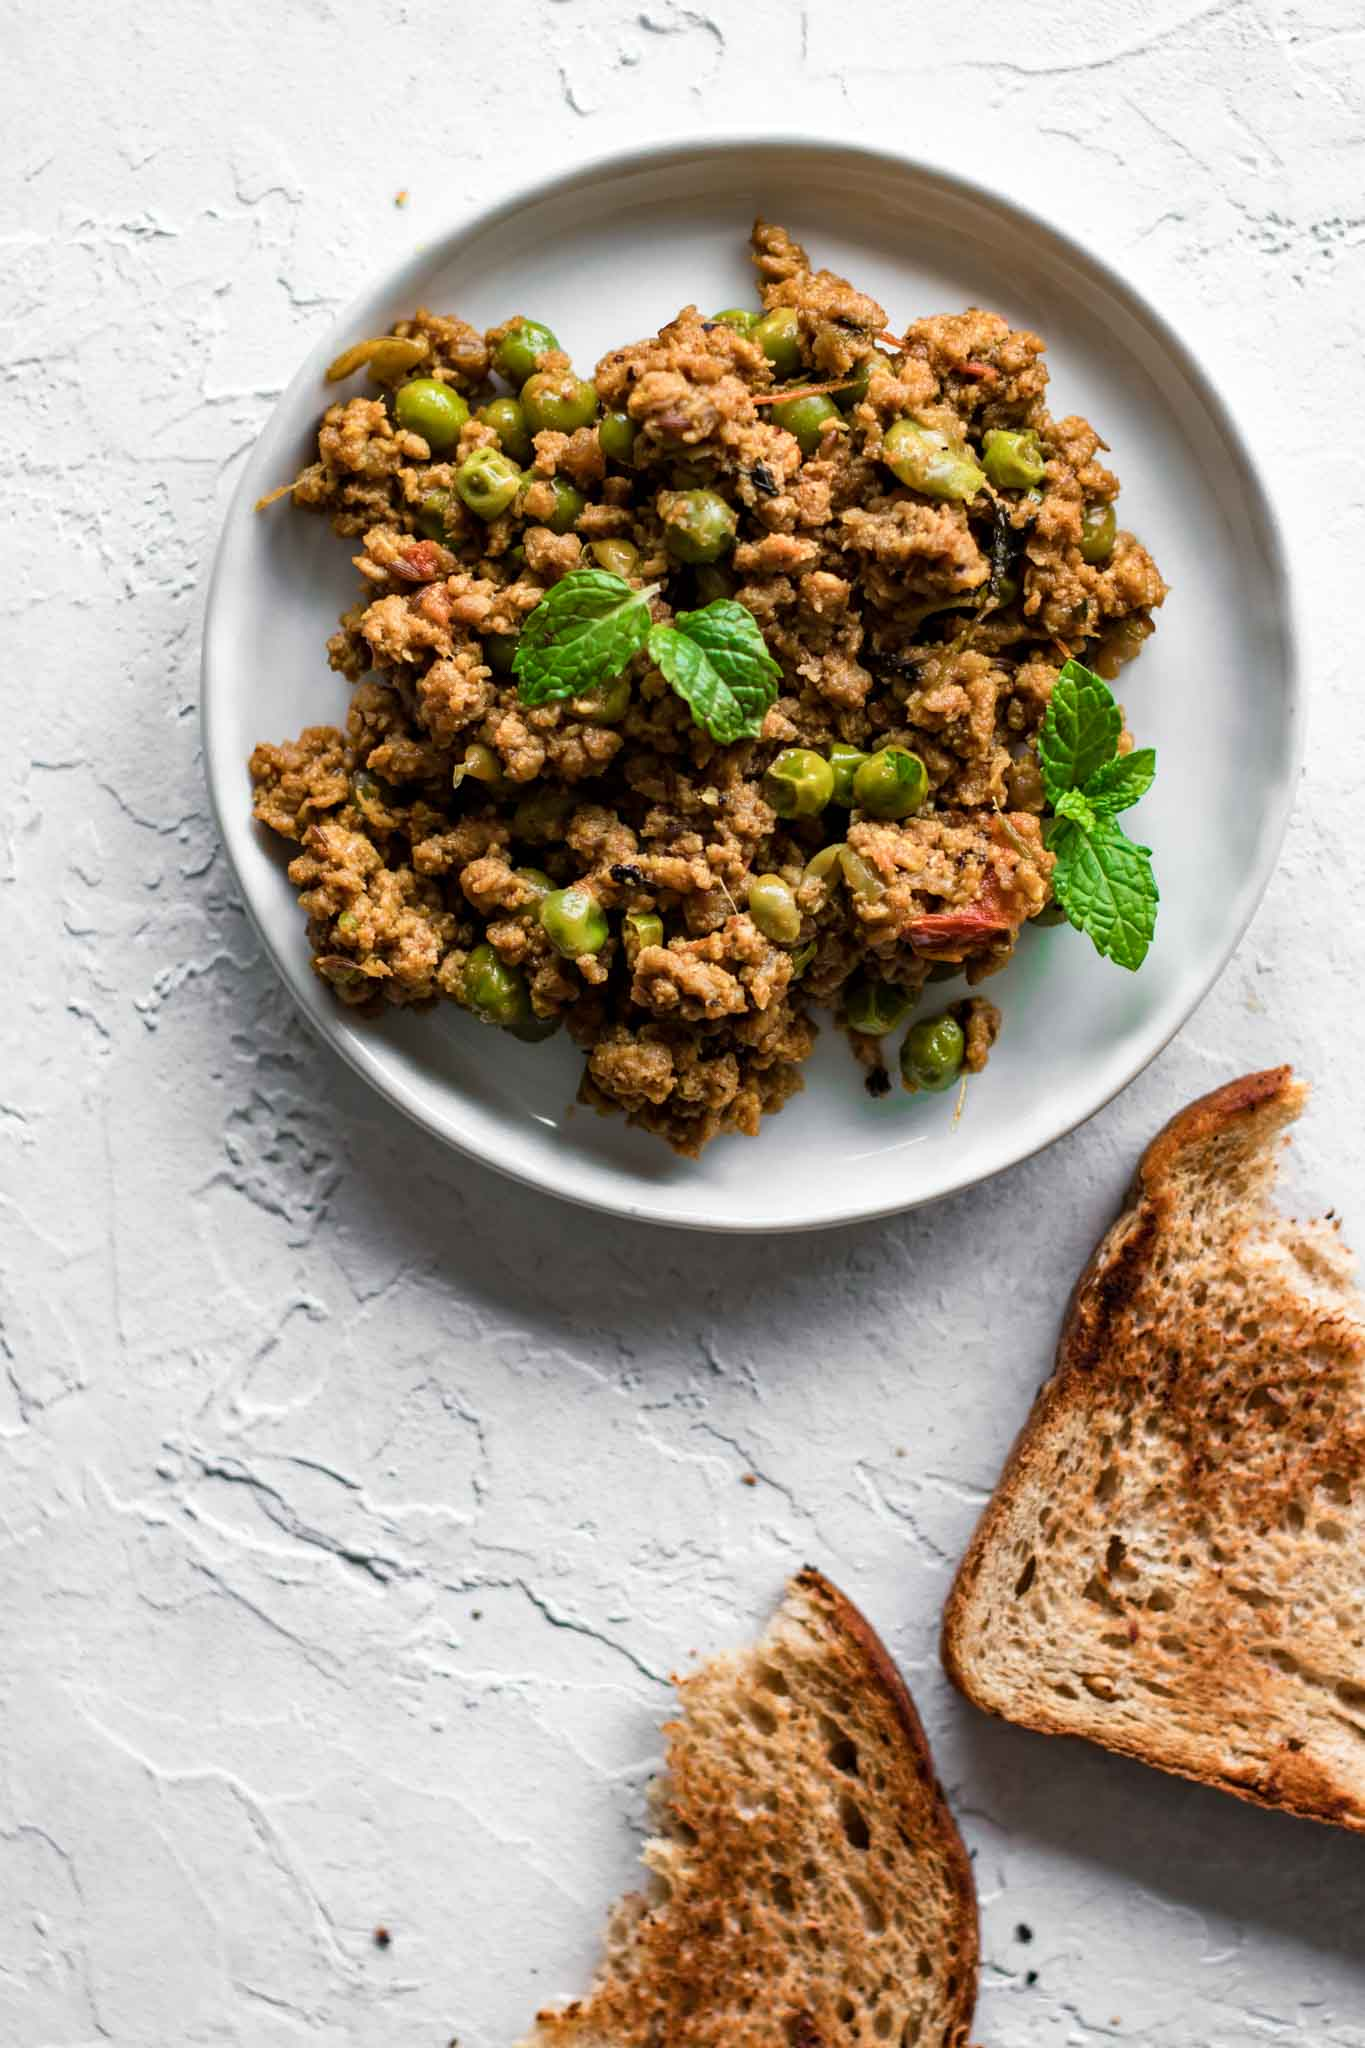 Keema Matar on a plate with toasted bread